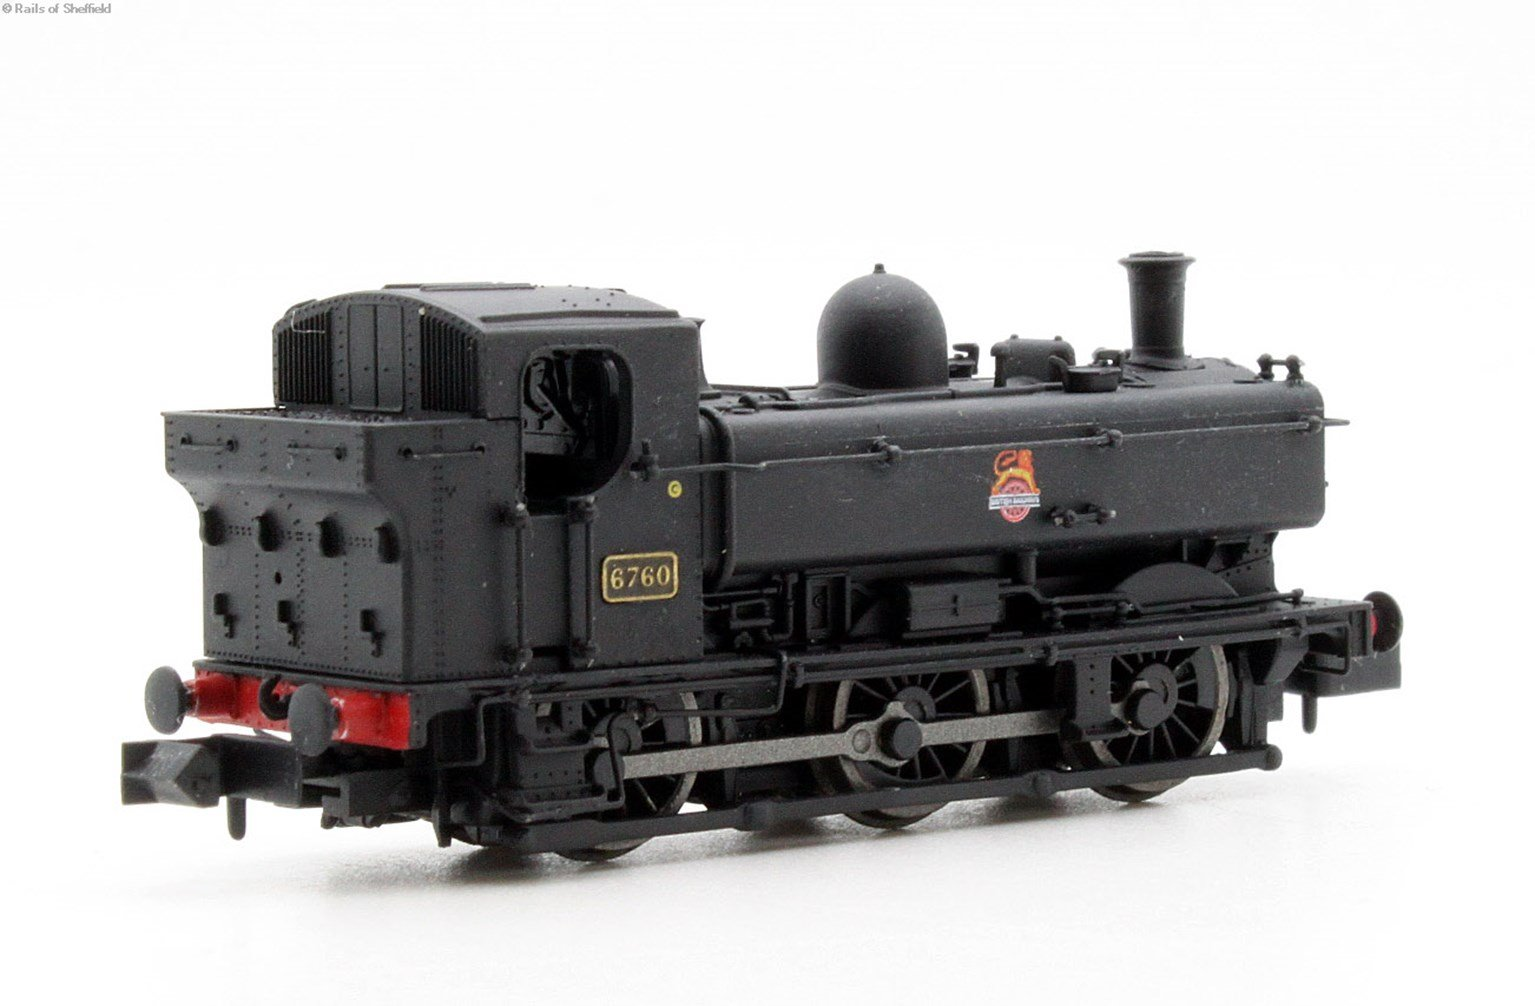 Class 57xx Pannier 0-6-0PT 6760 in BR black with early crest and later cab